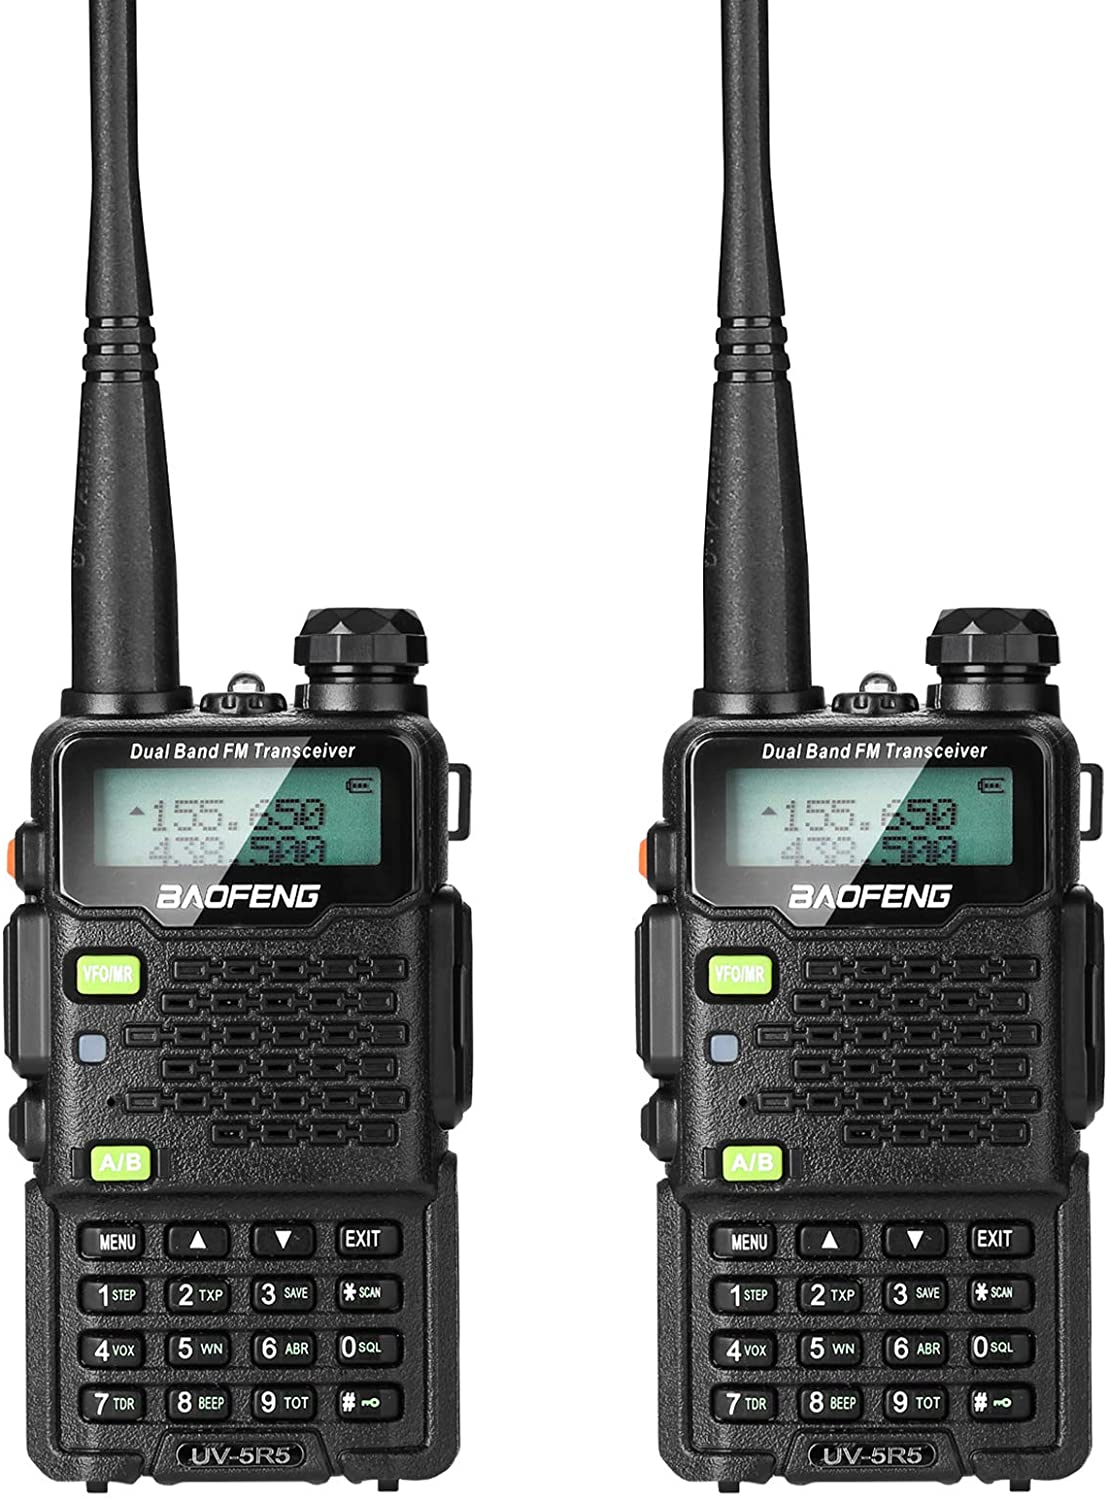 BAOFENG 2 Pack UV-5R5 5-Watt Dual Band Two-Way Radio (144-148MHz VHF & 420-450MHz UHF) Includes Full Kit with Large Battery: Car Electronics